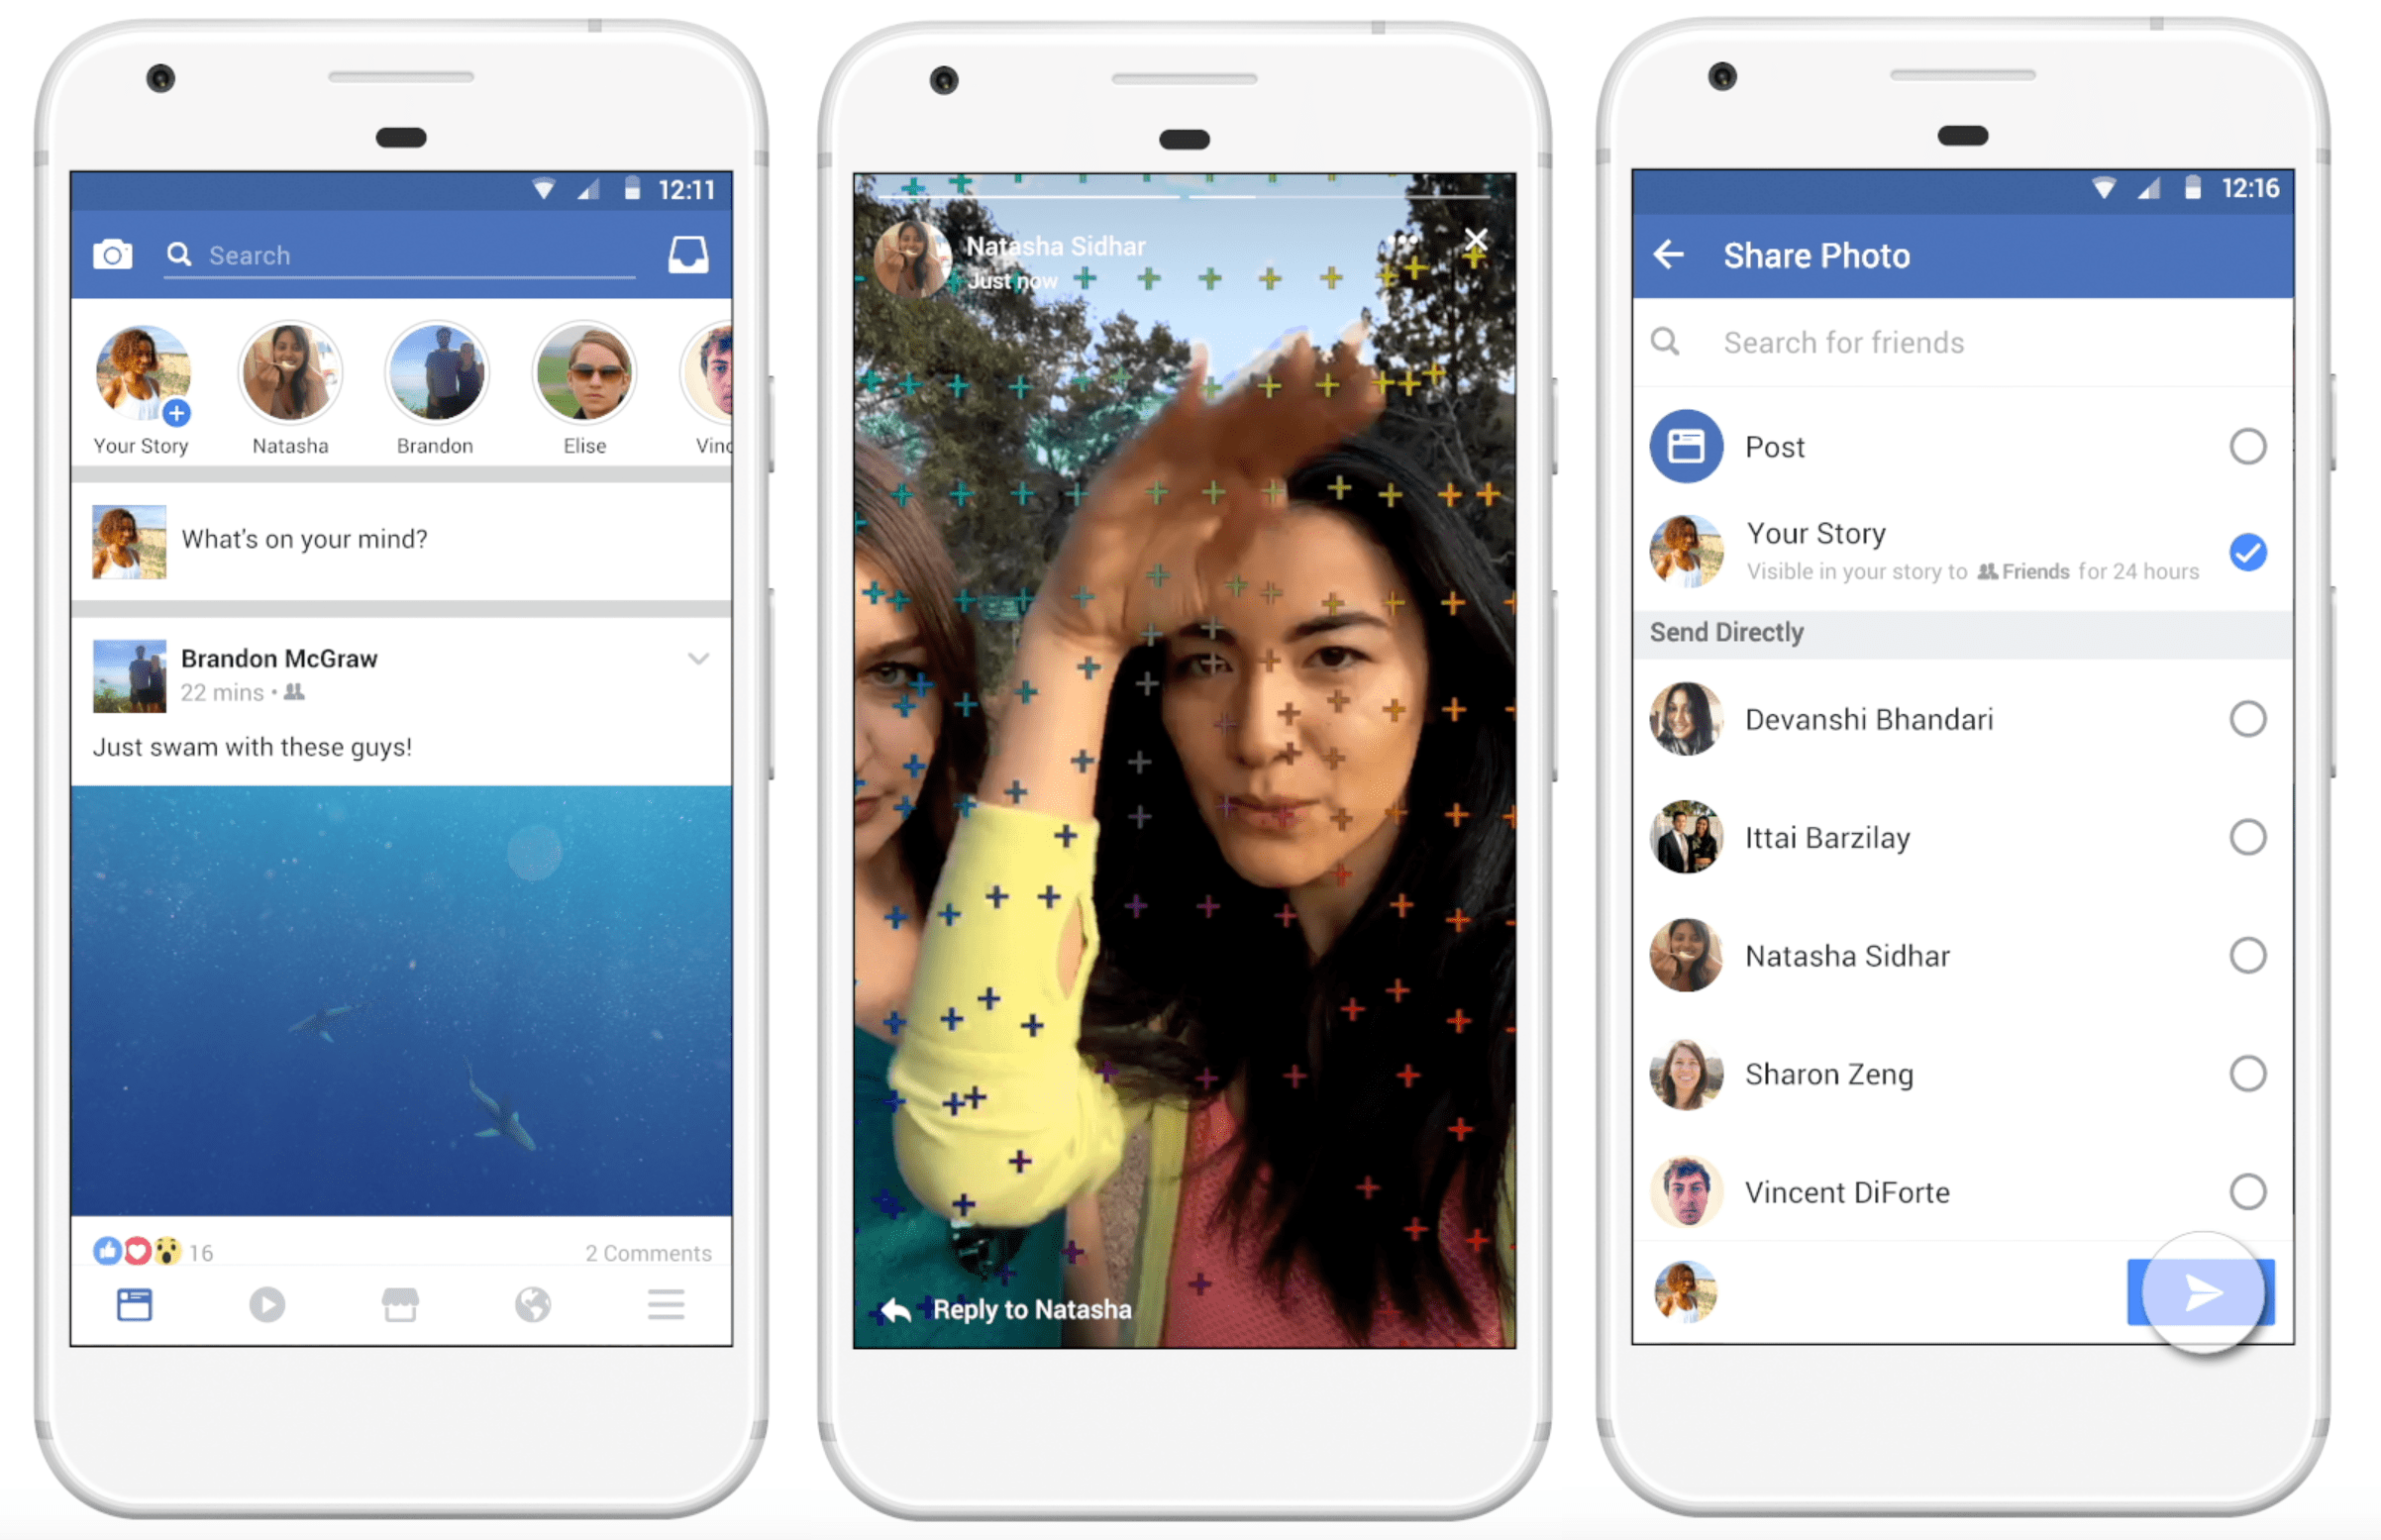 Instagram tests feature enabling users to share Stories directly to Facebook